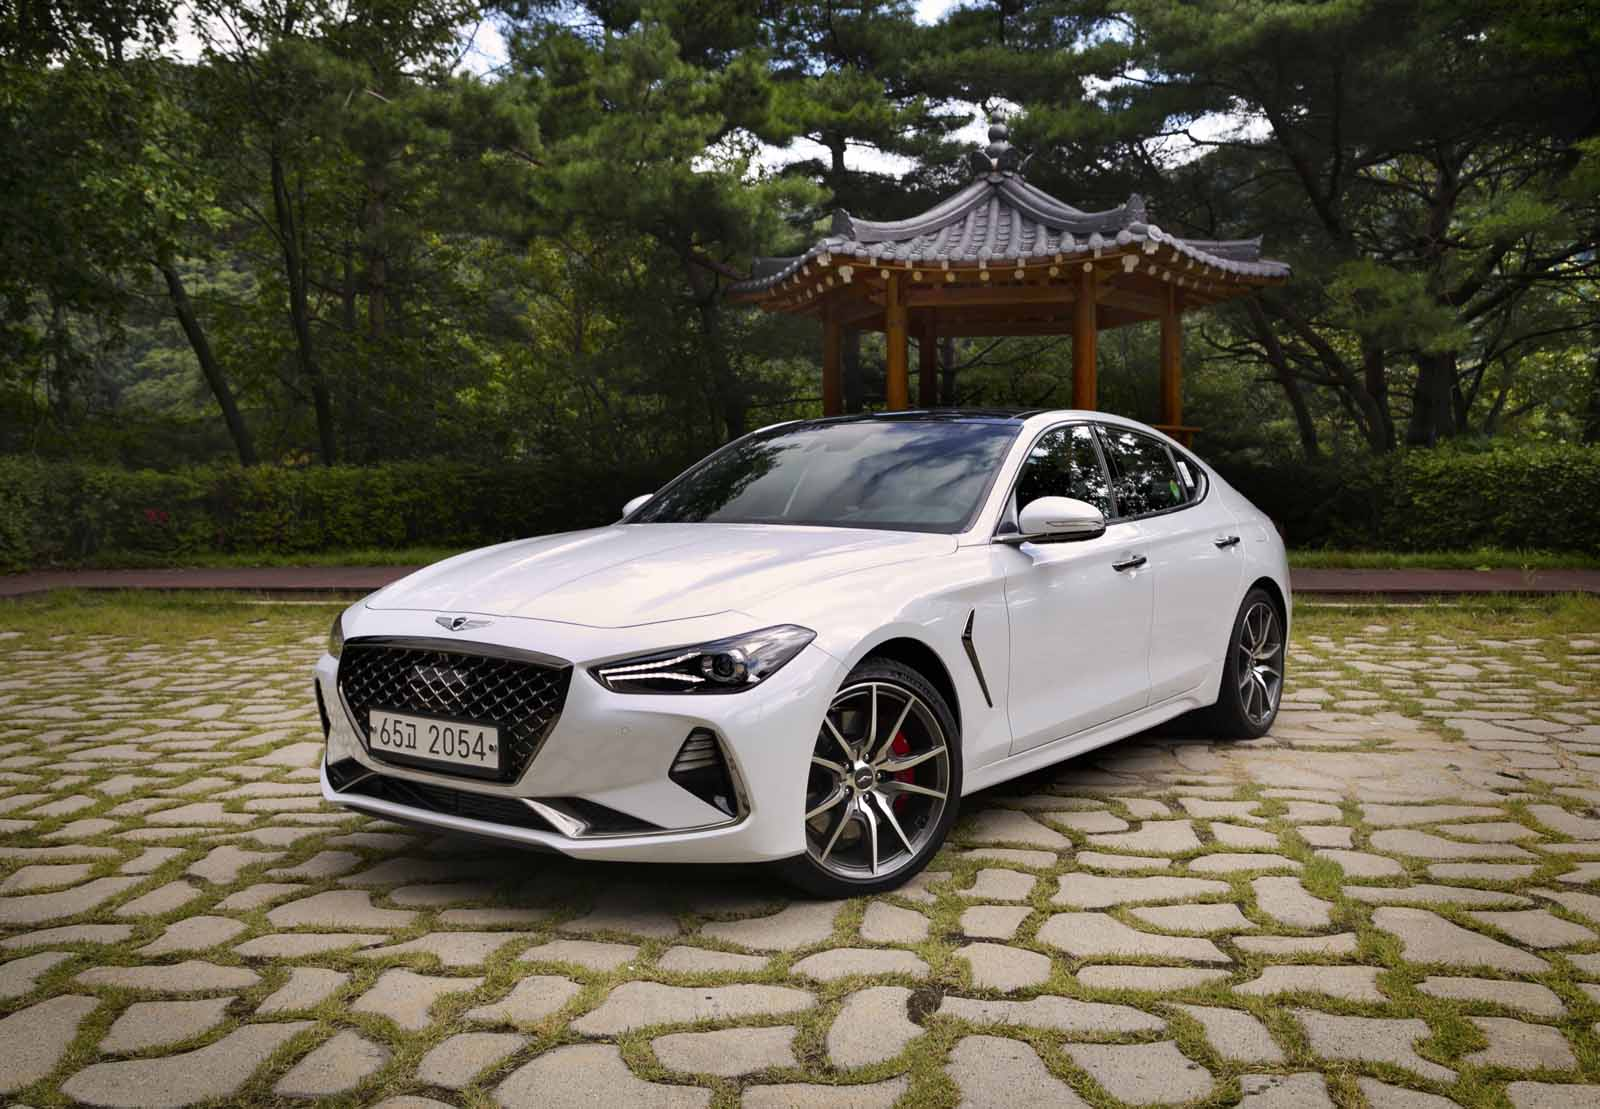 2018 genesis g60. The South Korean City Of Seoul Is A Modern Metropolis With Densely Packed Apartment Towers, Great Food, And Terrible Traffic. 2018 Genesis G60